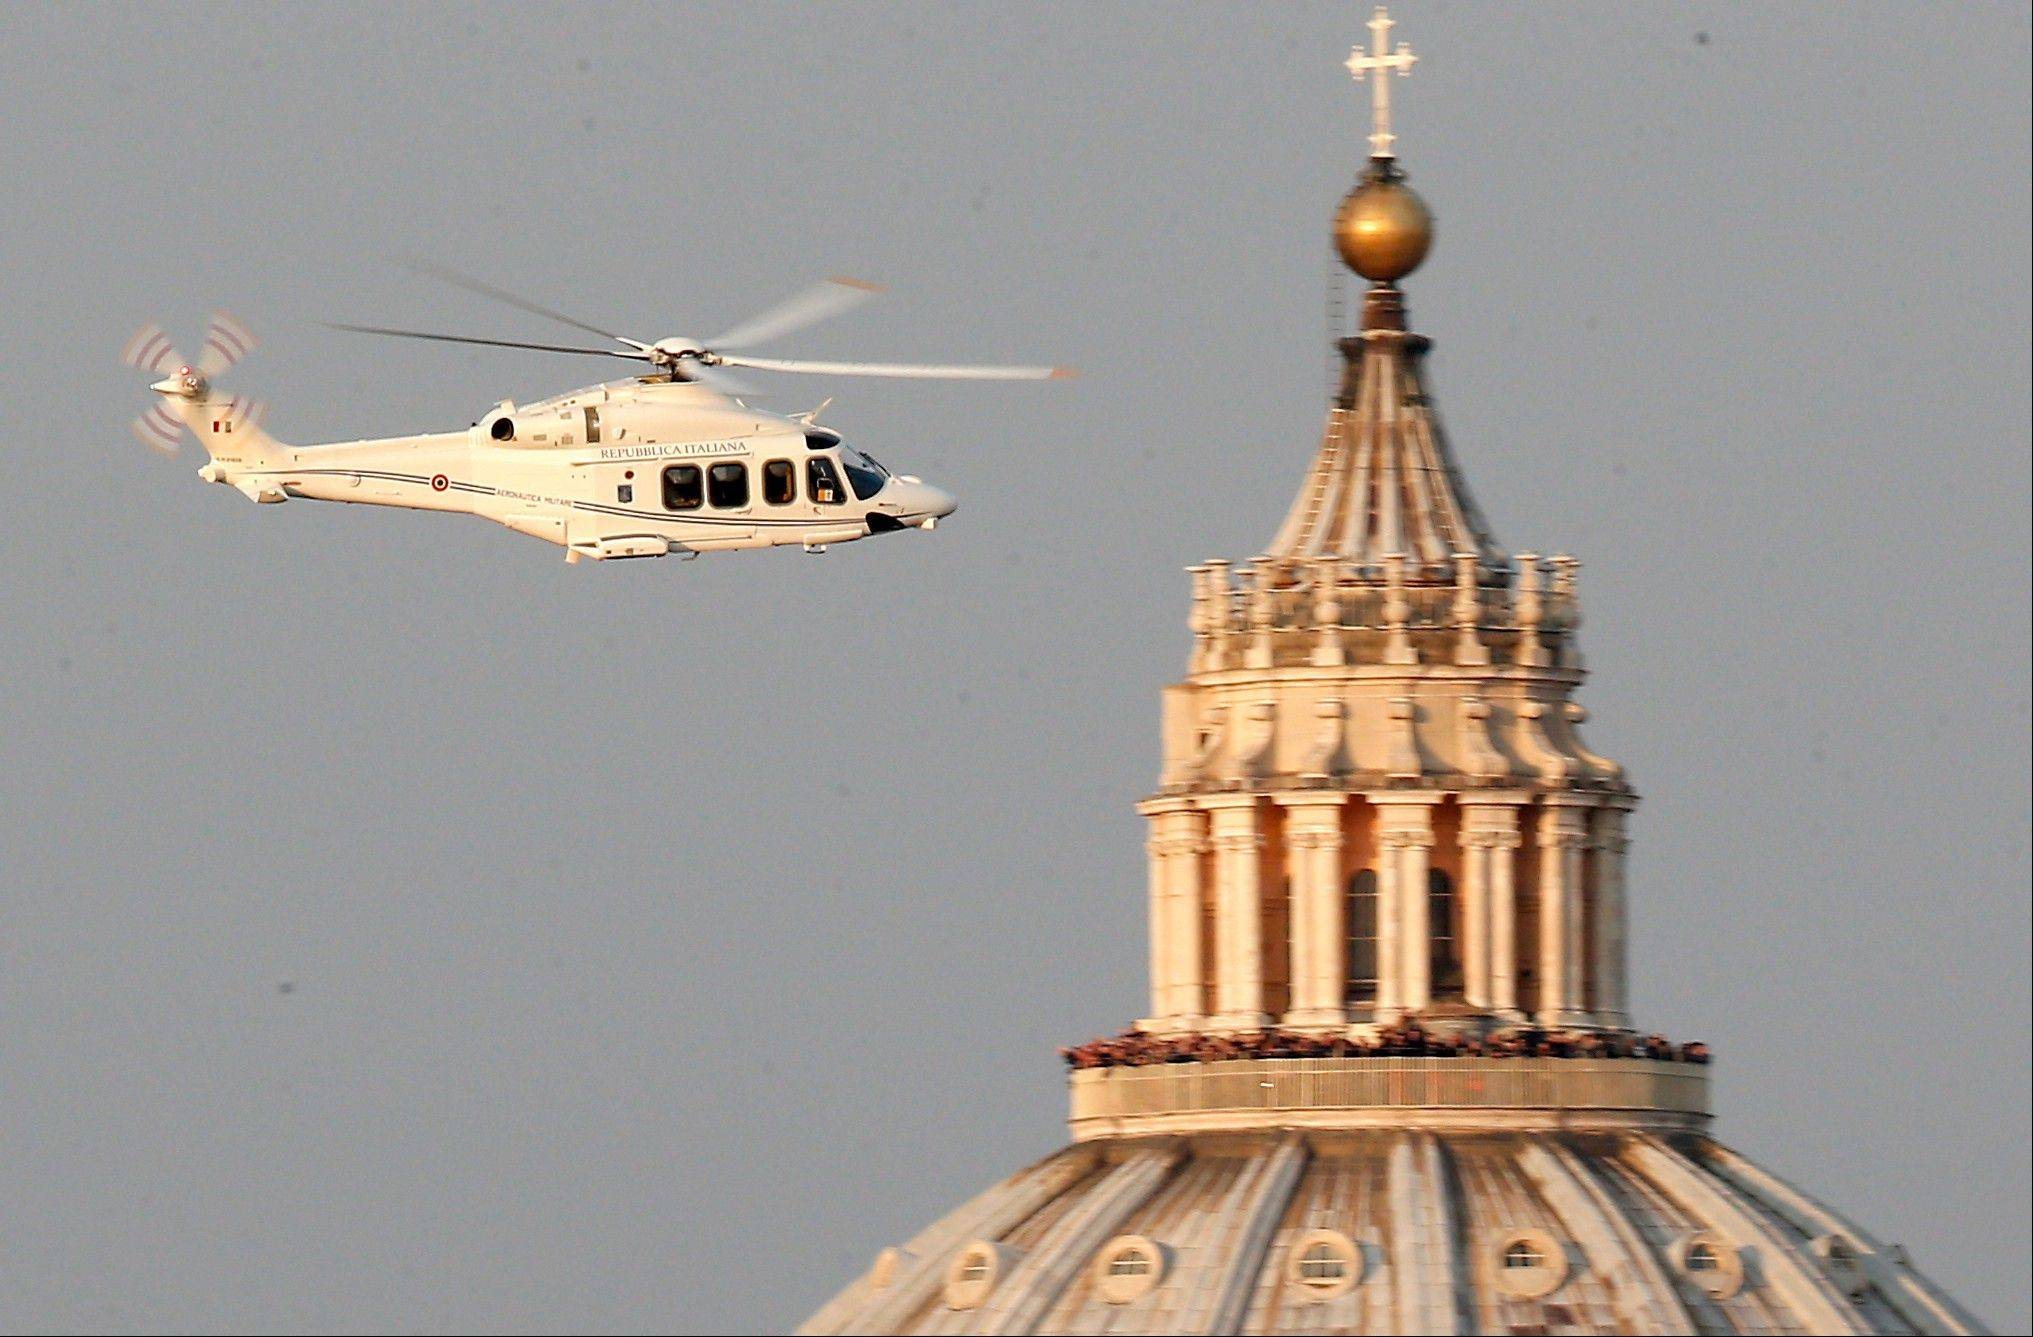 A helicopter with Pope Benedict XVI onboard Thursday leaves the Vatican in Rome. The 85-year-old German Pope Benedict is stepping down on Thursday evening, the first pope to do so in 600 years, after saying he no longer has the mental or physical strength to vigorously lead the world's 1.2 billion Catholics.